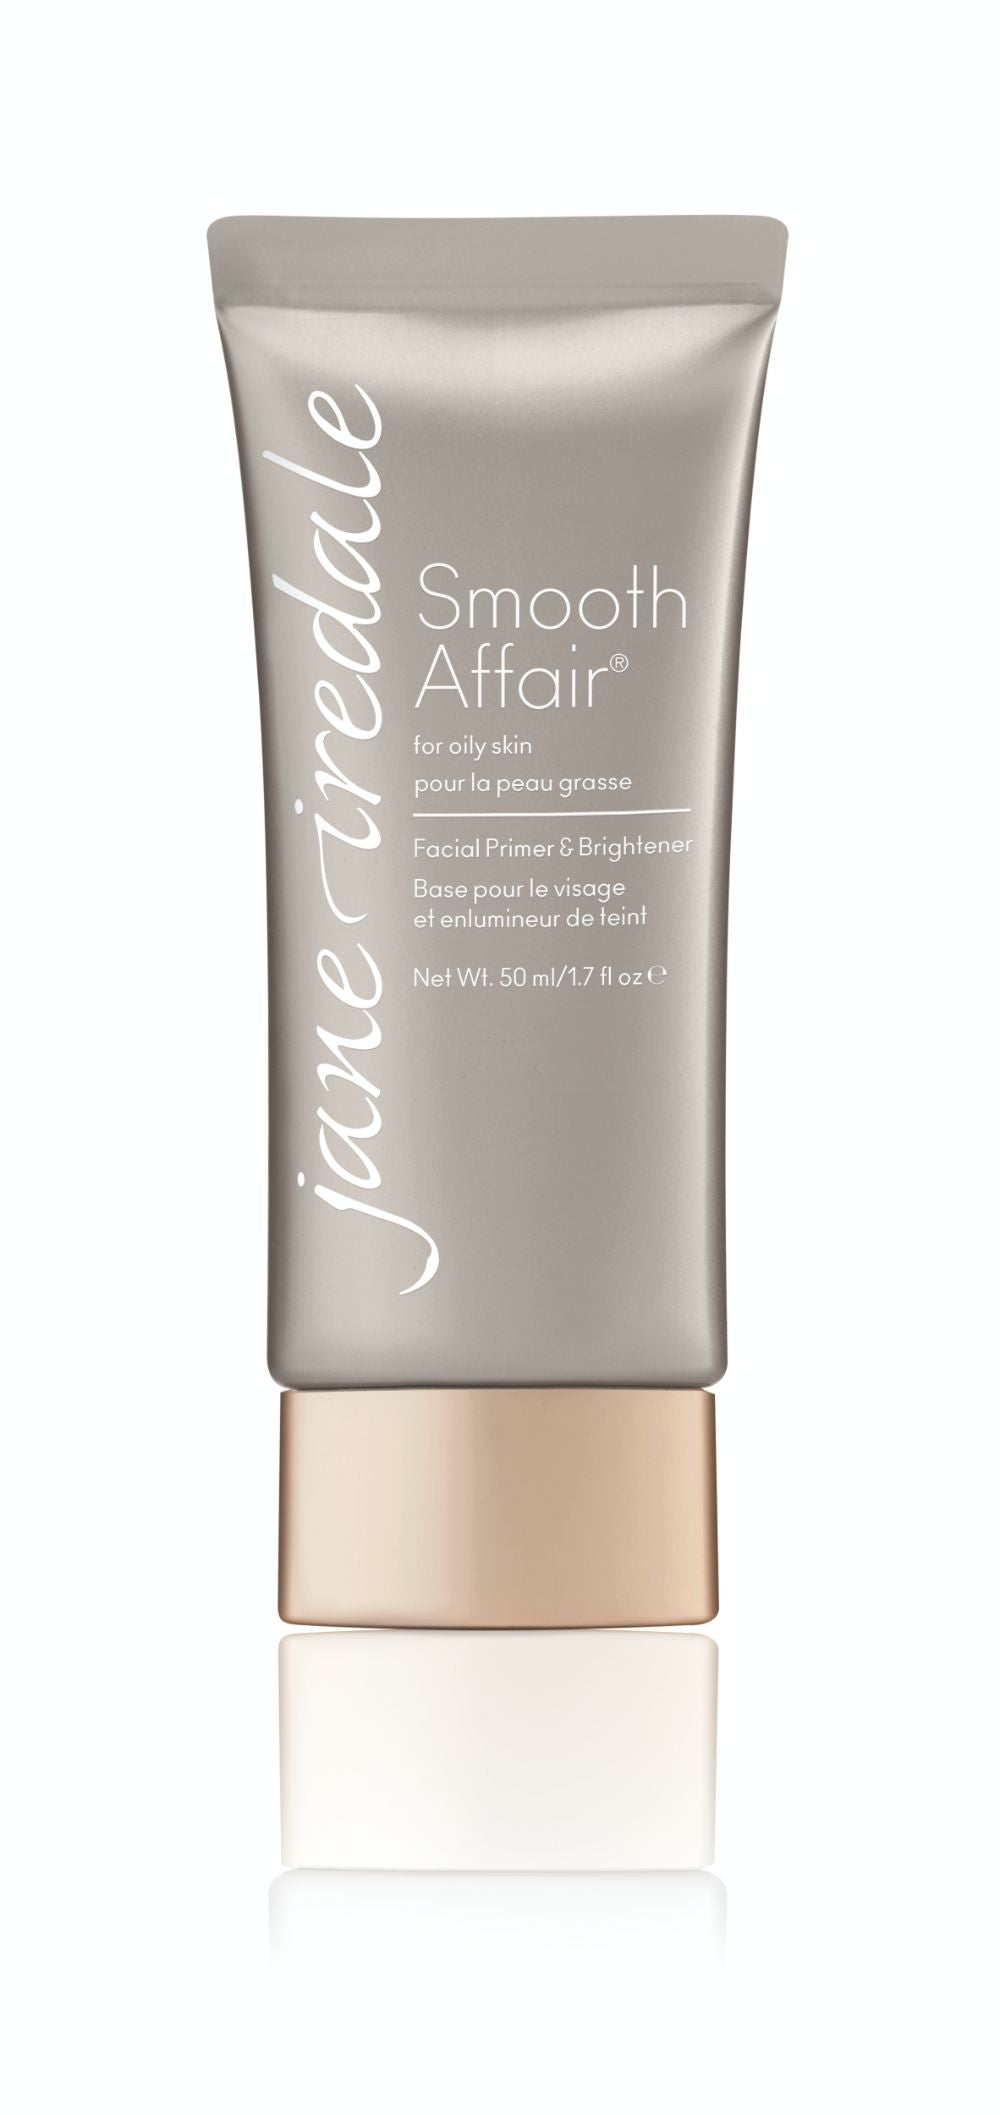 Jane Iredale Smooth Affair for Oily Skin Primer & Brightener